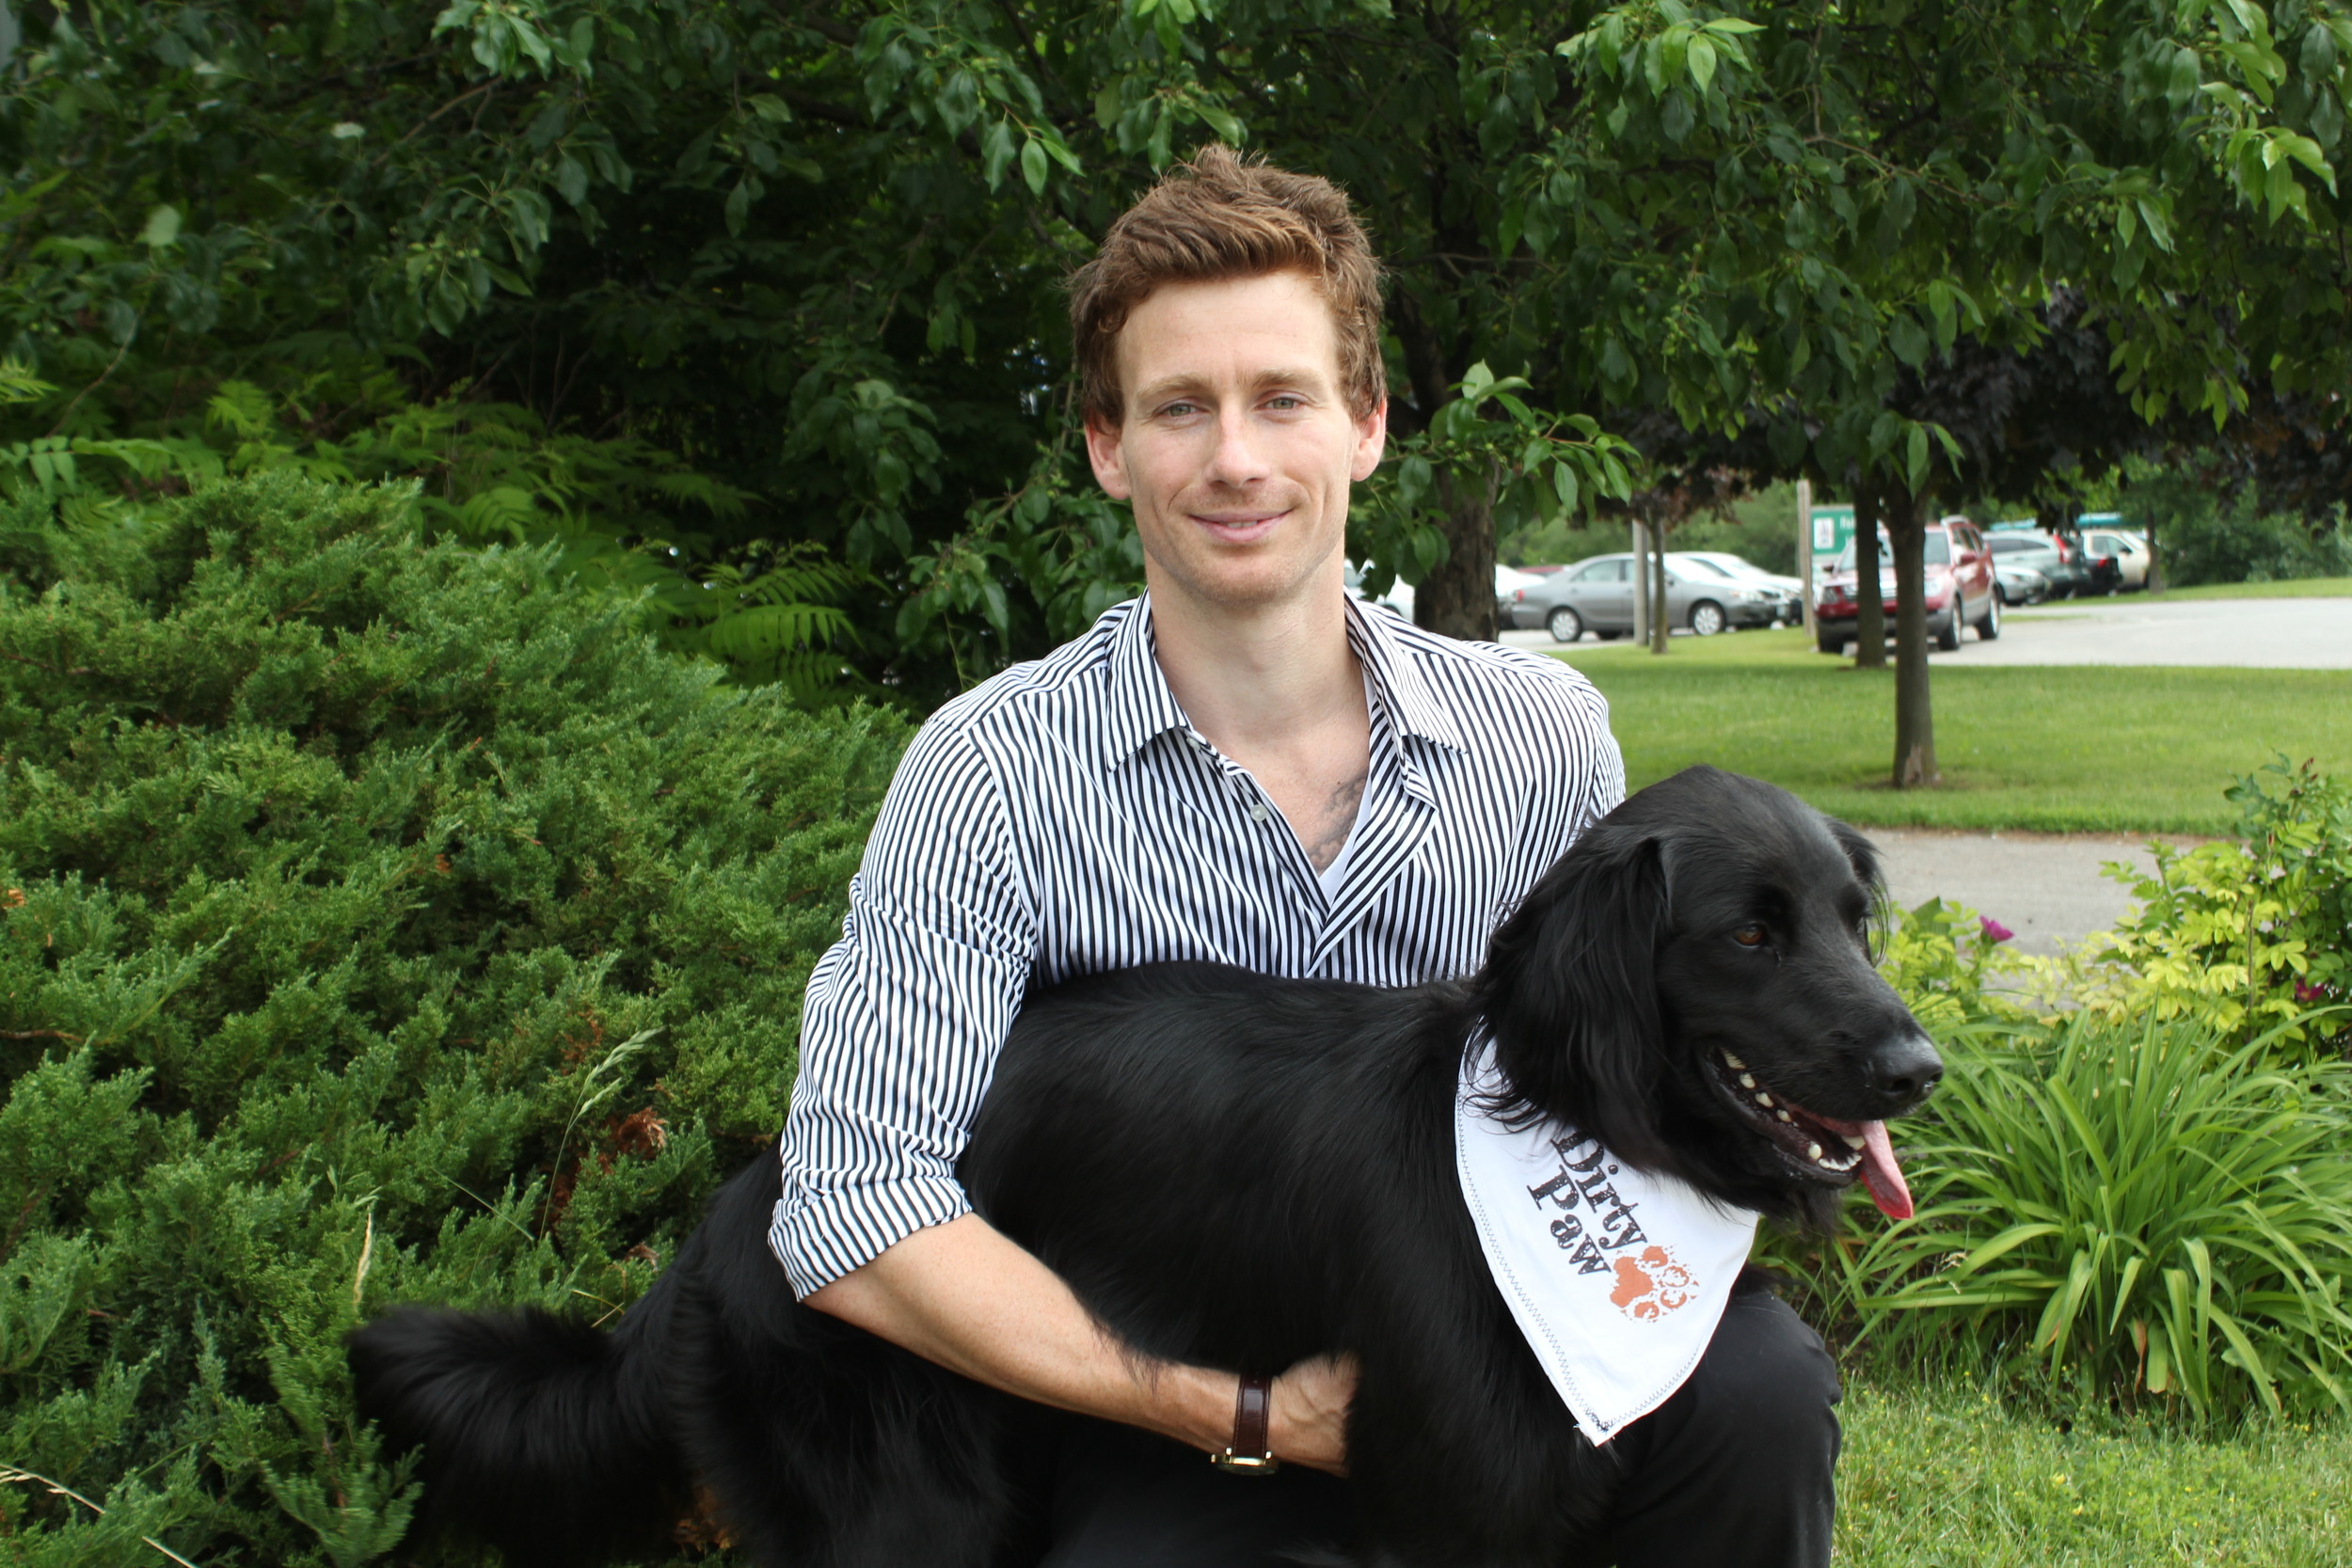 Aran Hinton with his beloved 3-legged mascot, Scout